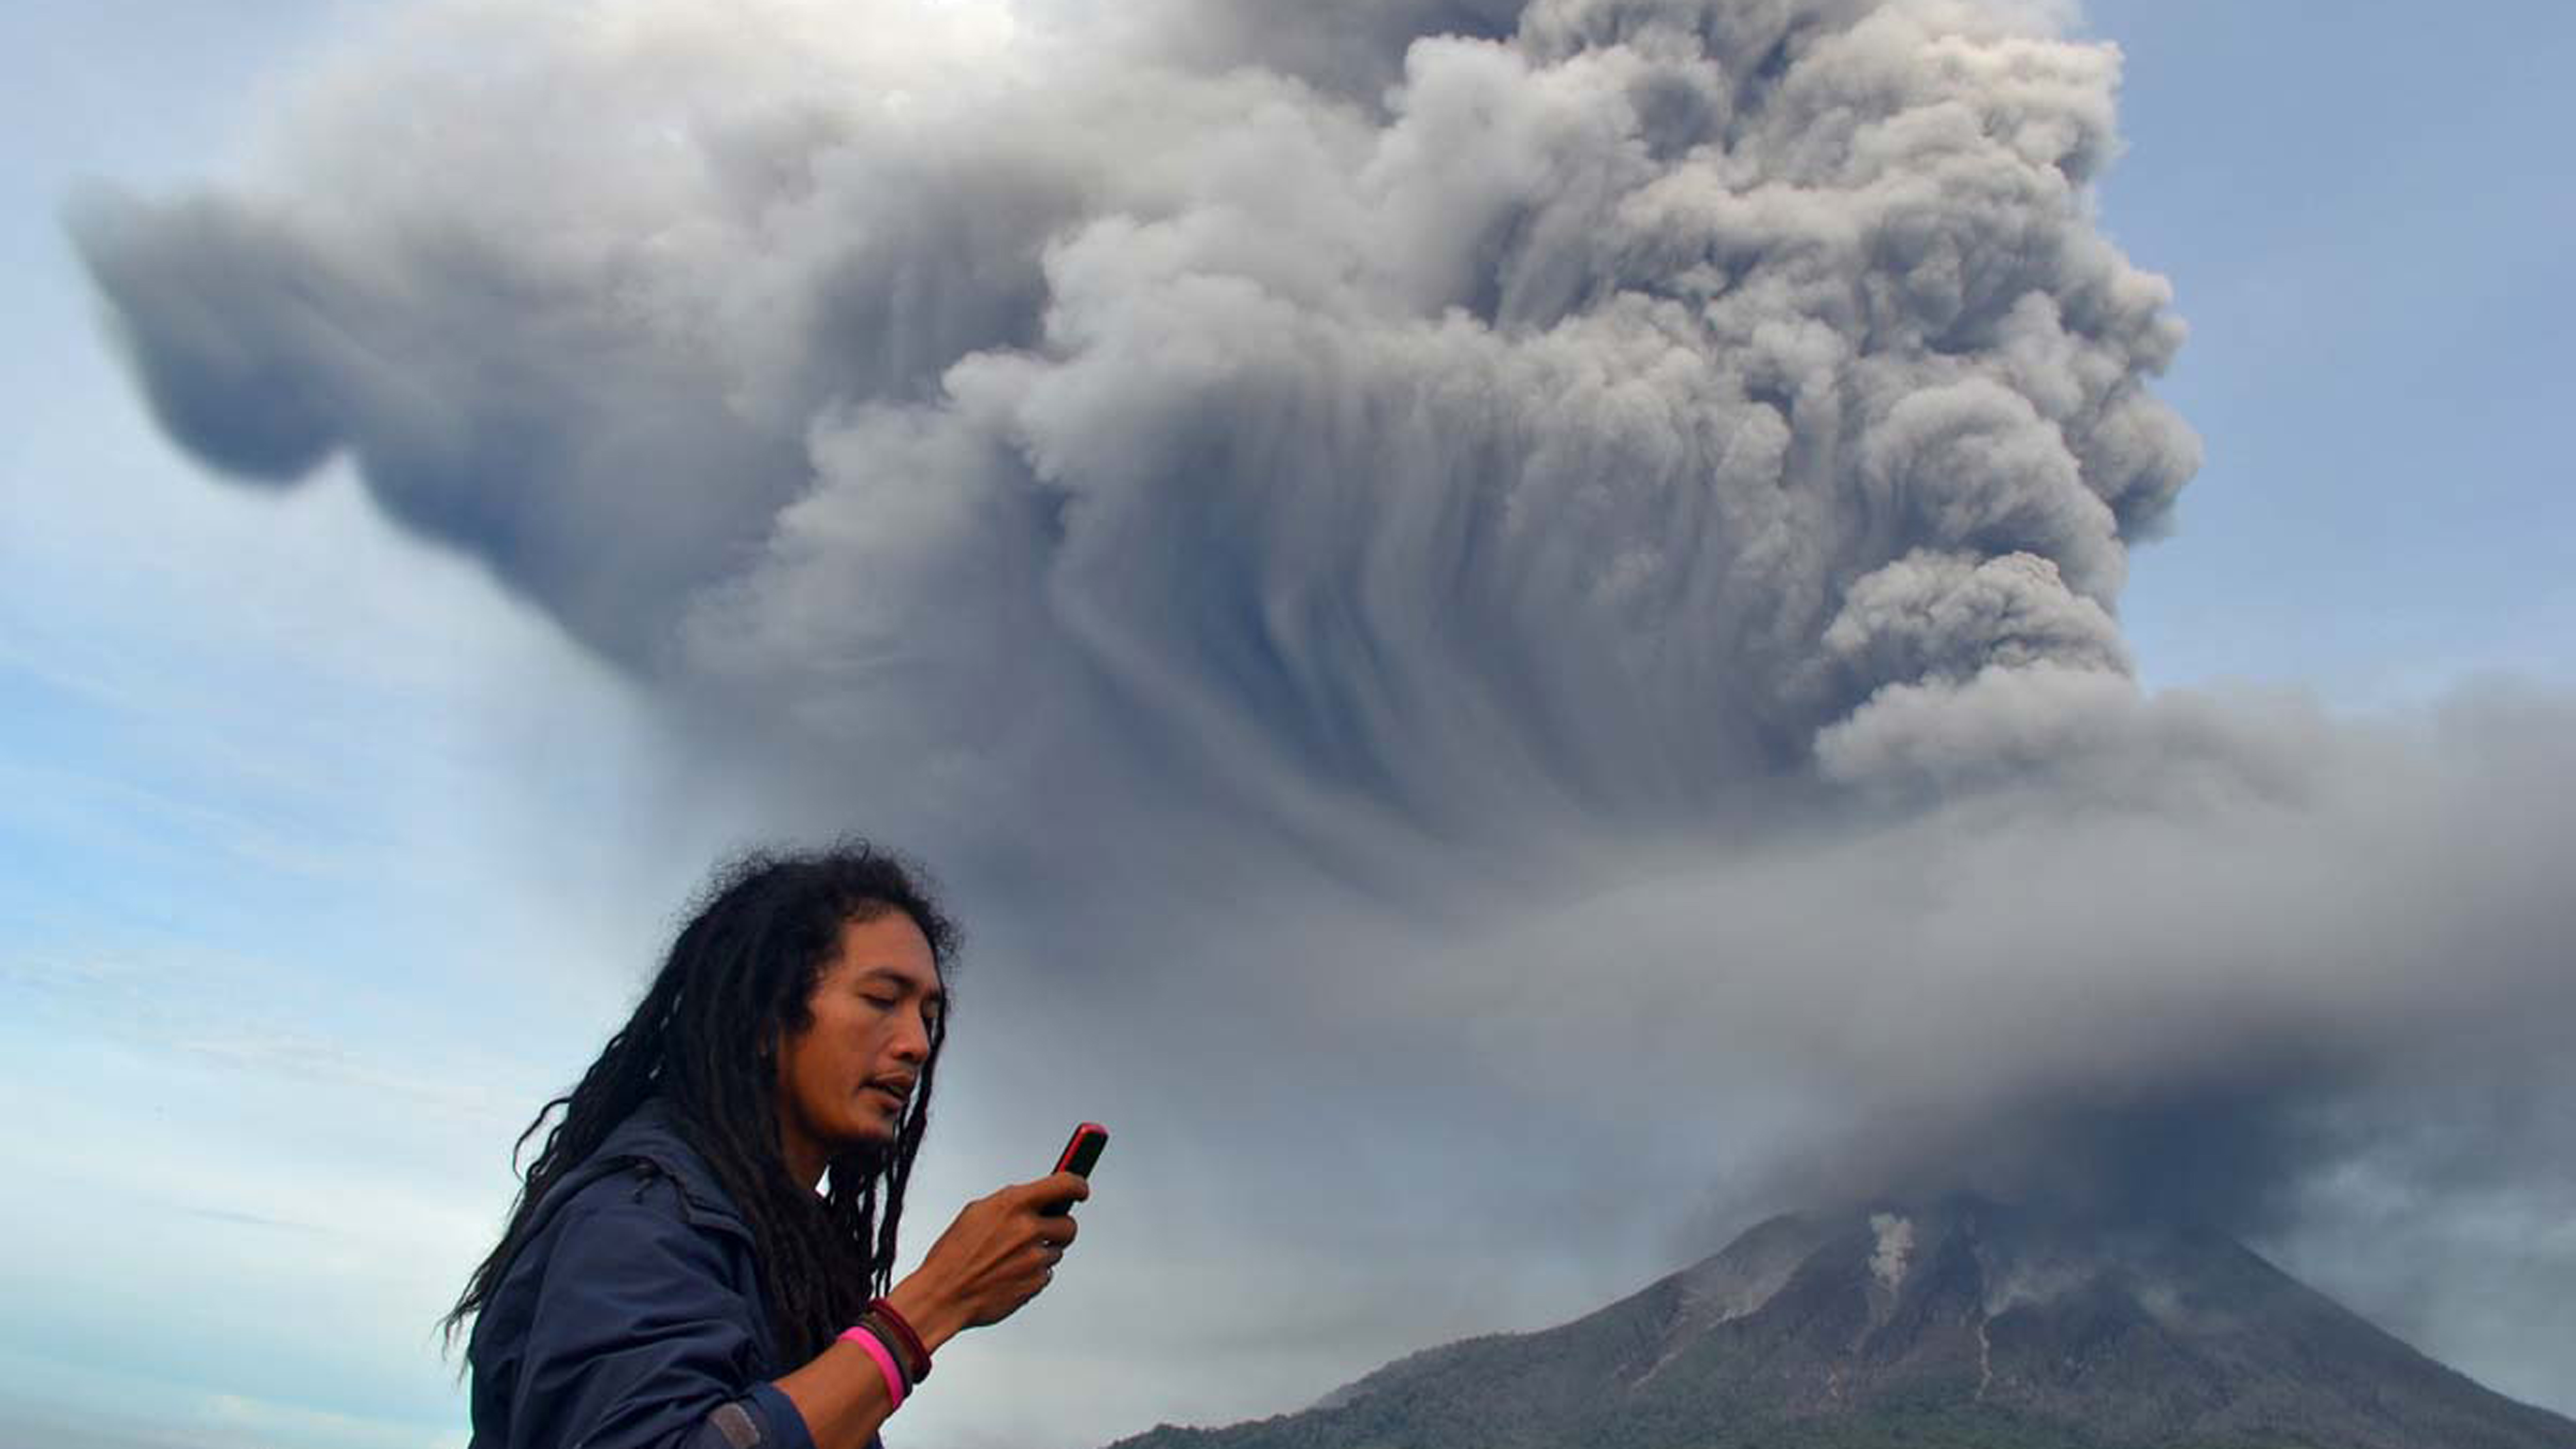 Nov. 18 Photo Brief: Indonesian volcano erupts, Dubai Airshow and more aid, normalcy sought following Typhoon Haiyan